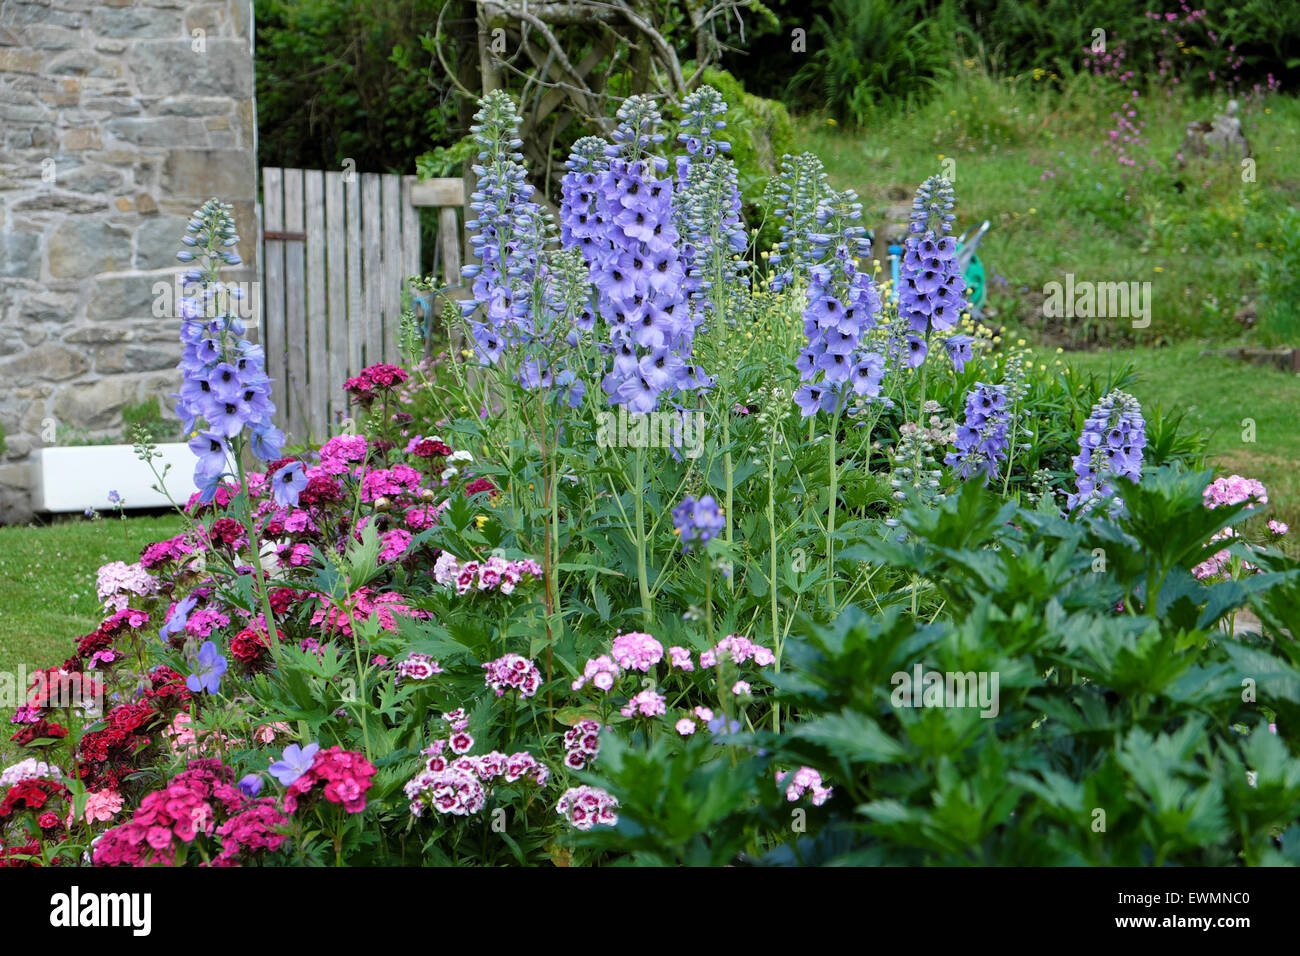 Delphiniums and sweet william flowers perennials bloom in a stock delphiniums and sweet william flowers perennials bloom in a herbaceous border in a rural country garden in carmarthenshire wales uk kathy dewitt mightylinksfo